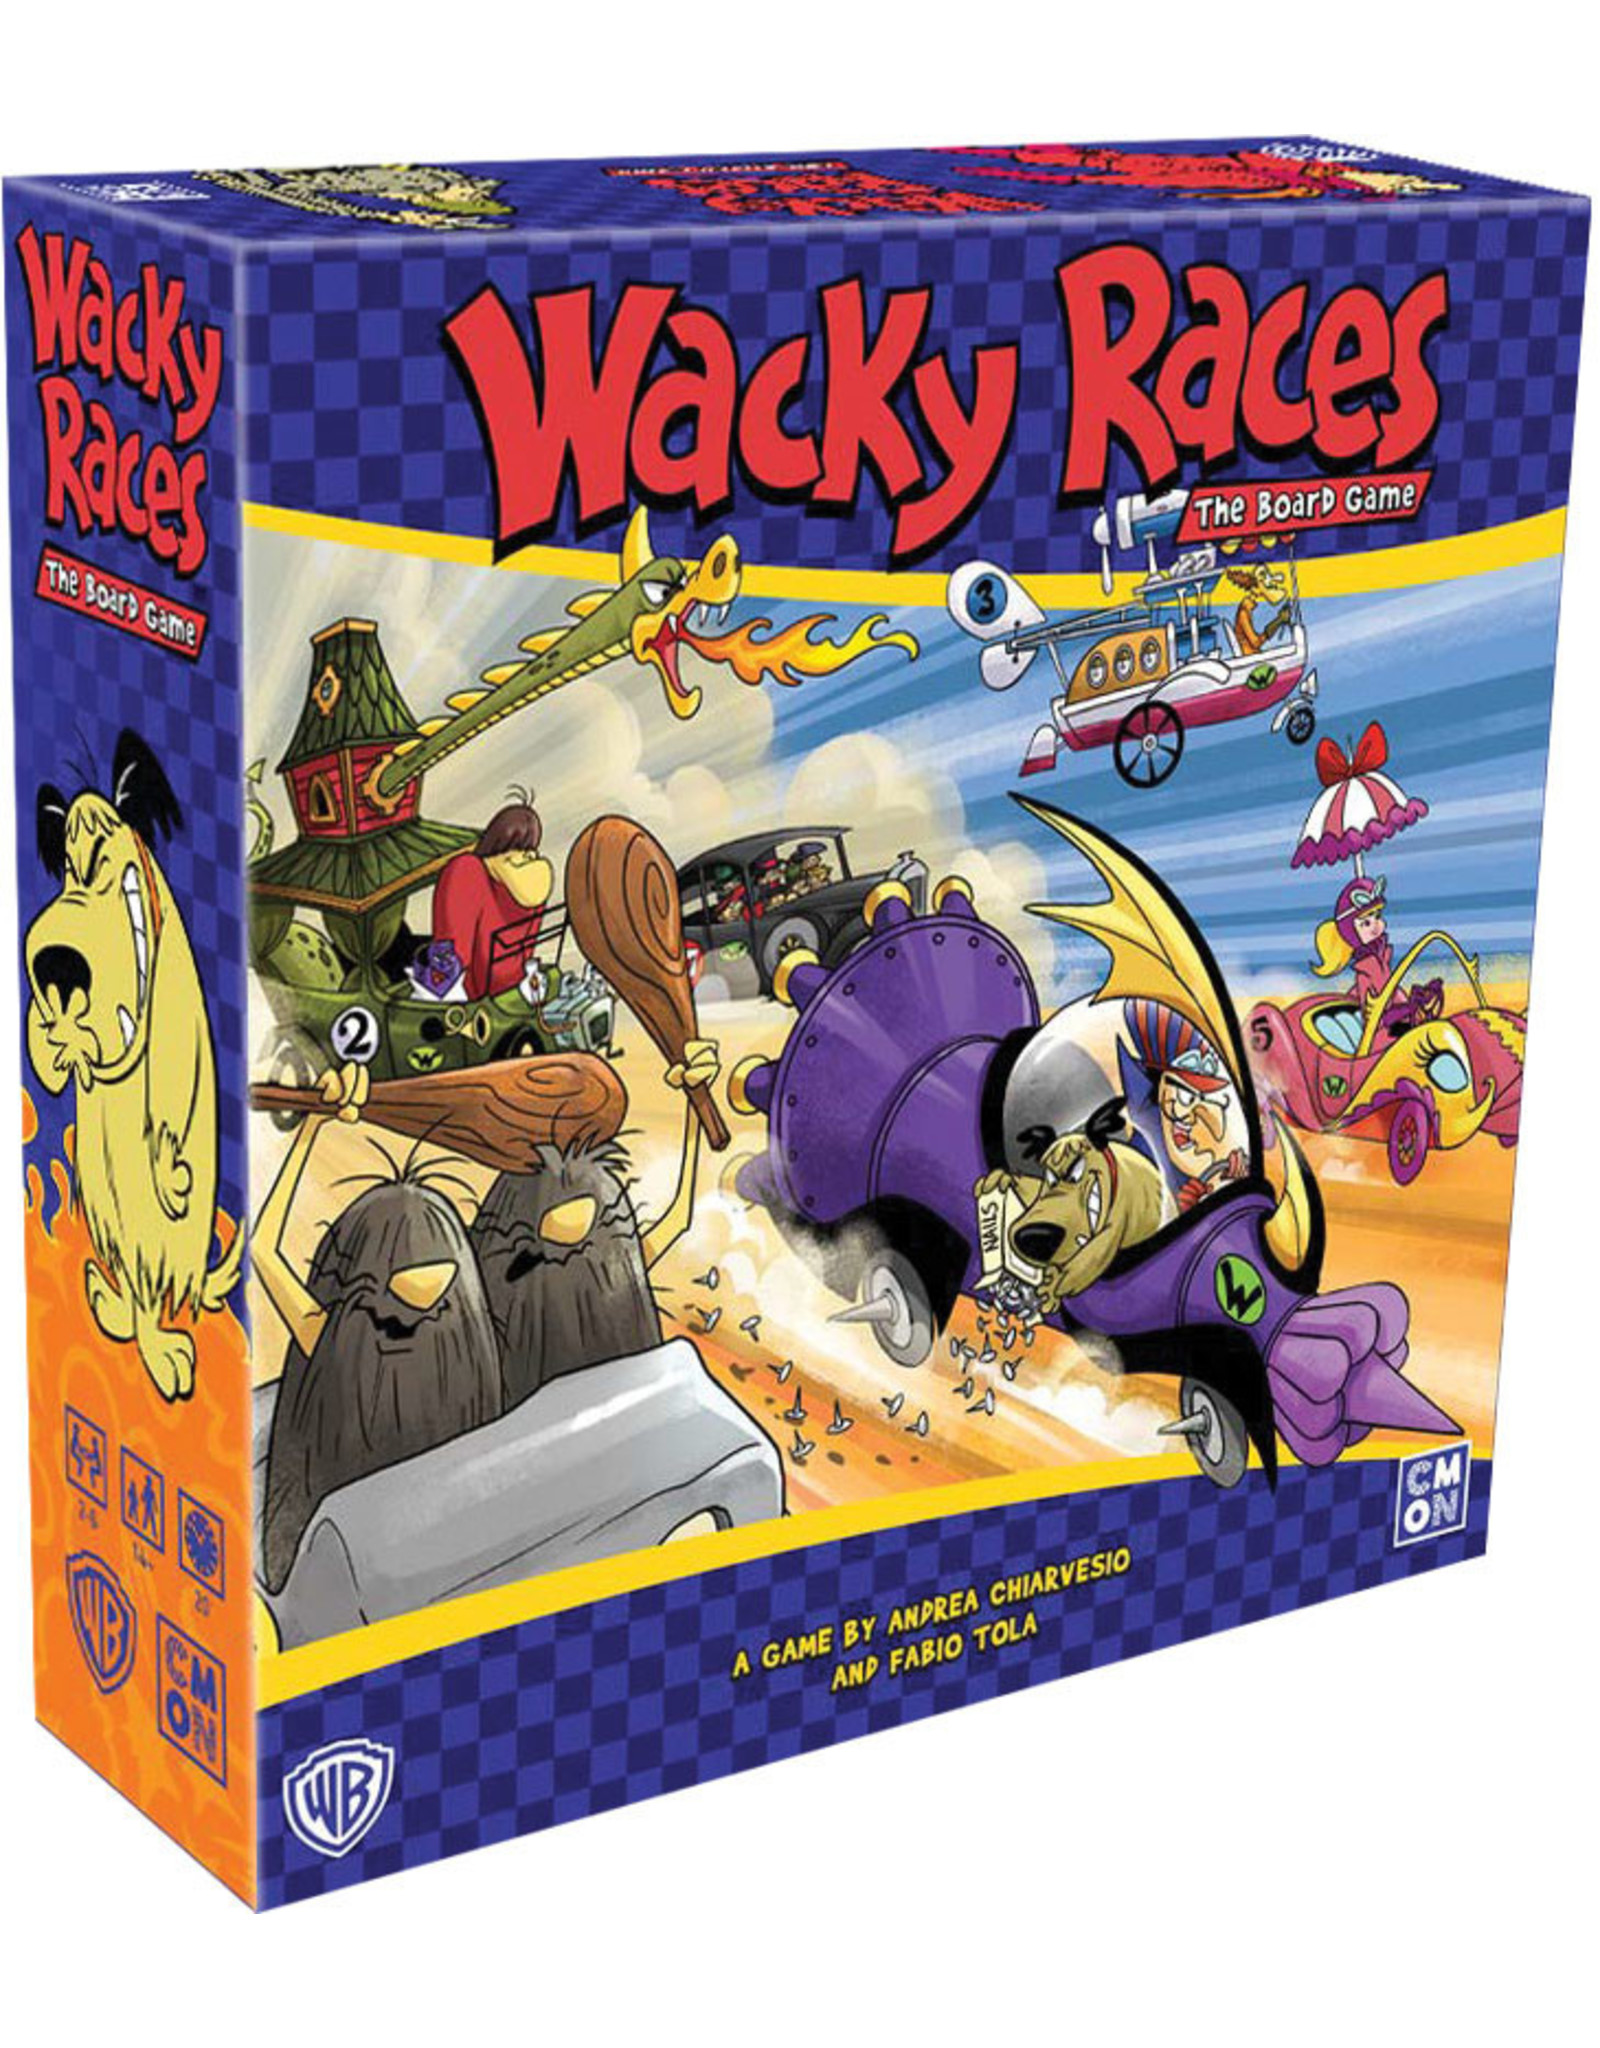 Cool Mini or Not Wacky Races: The Board Game